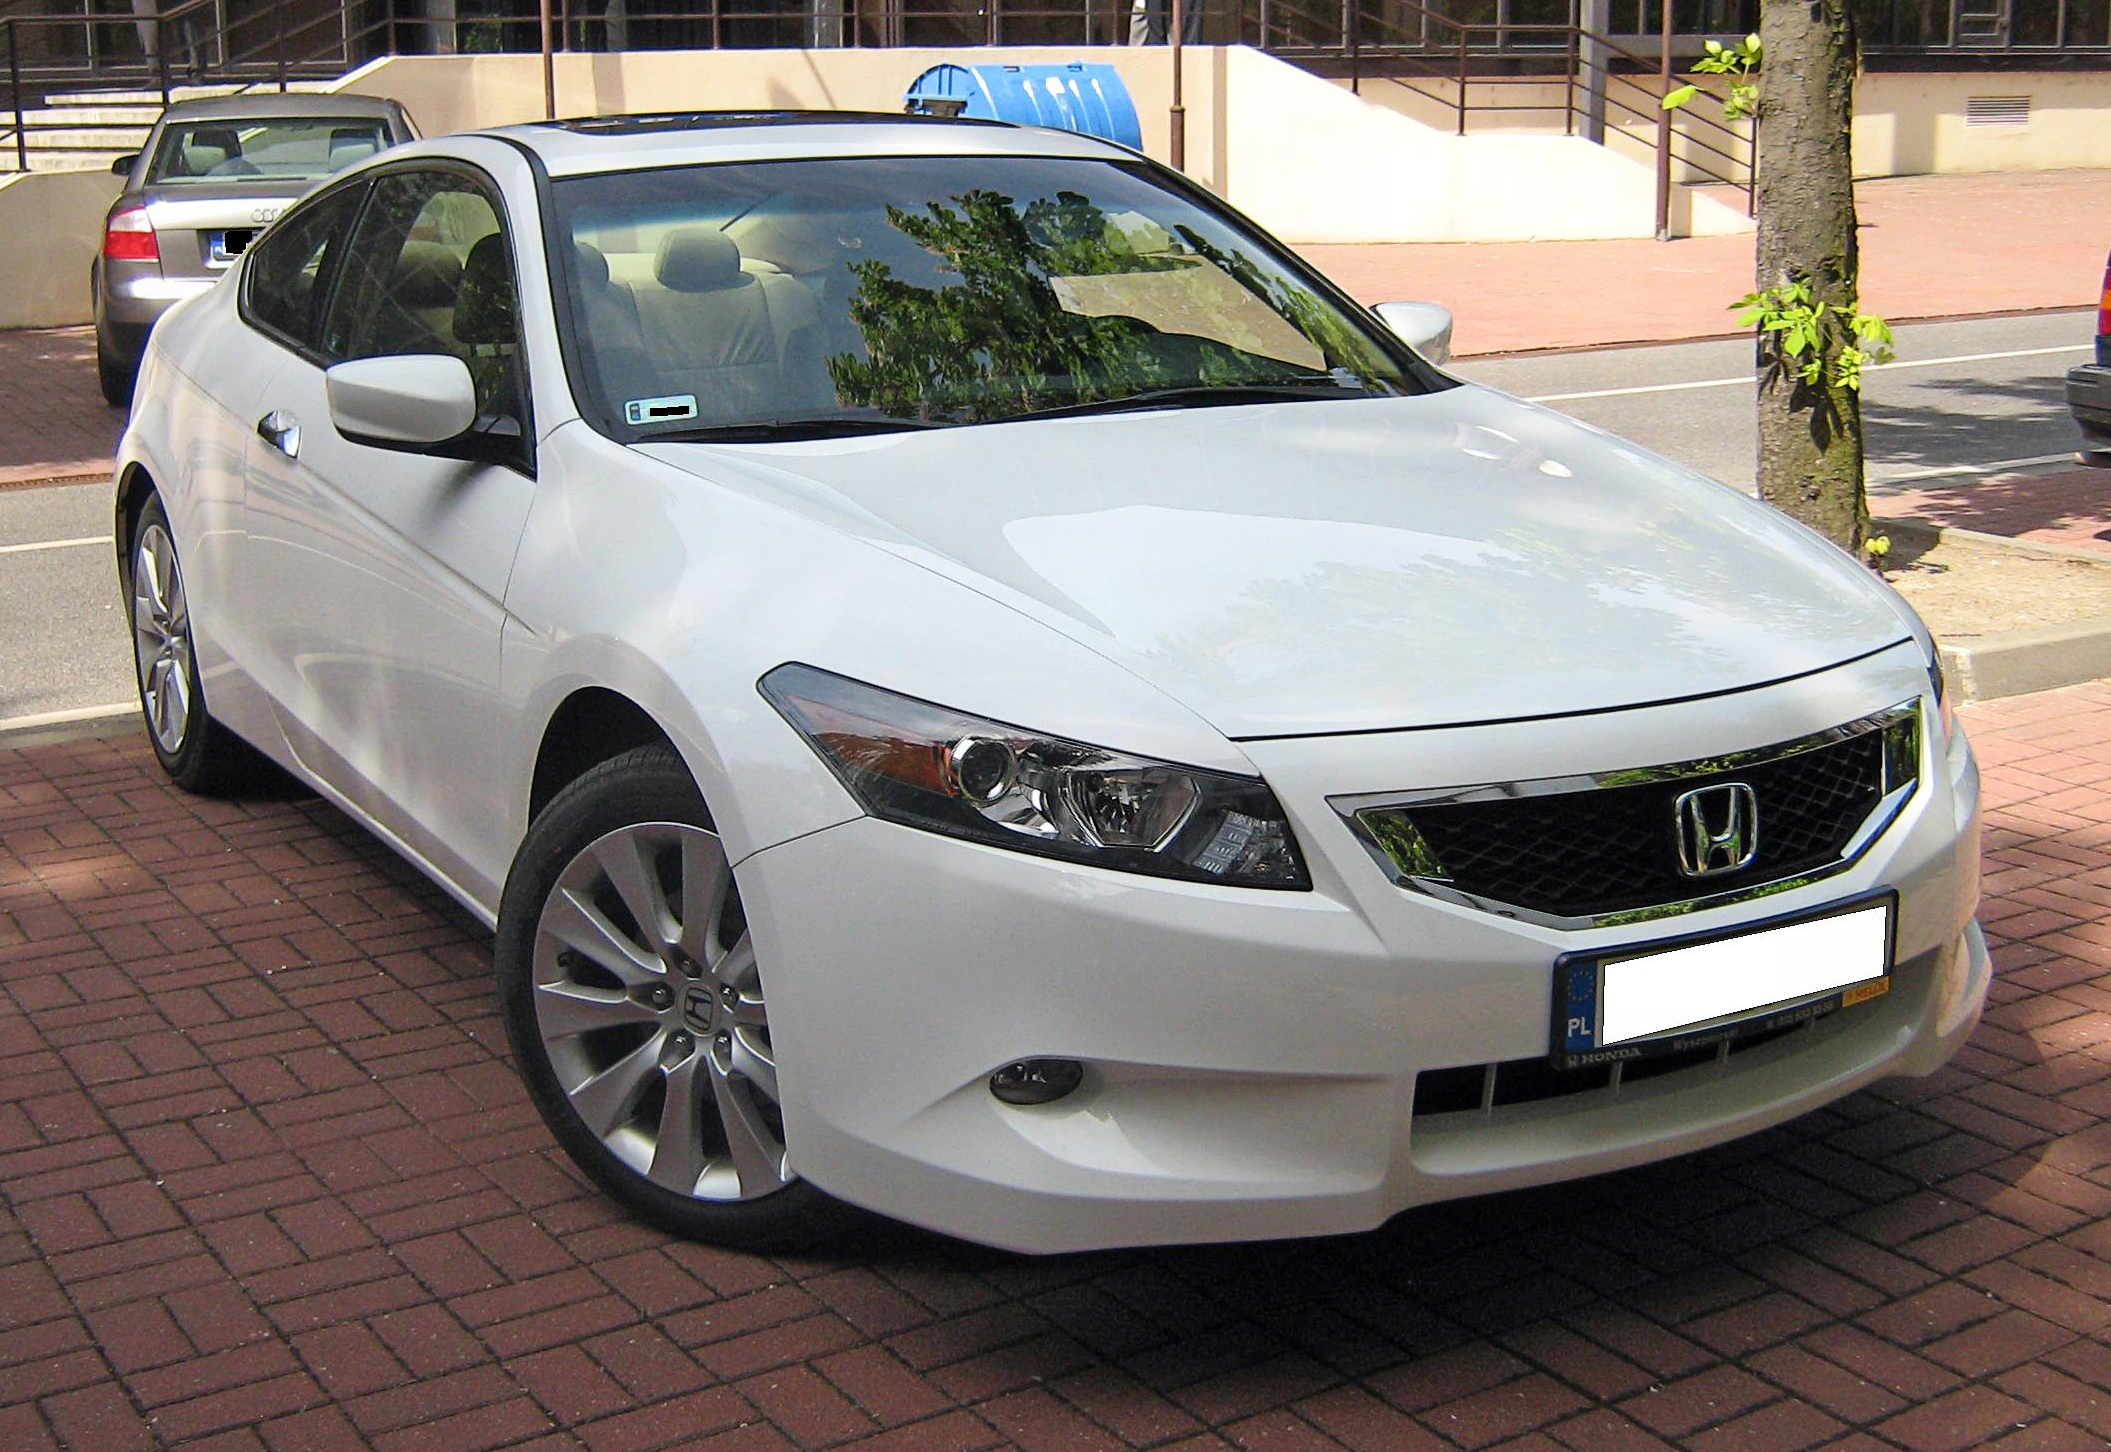 2009 Honda Accord Coupe V6 File:Honda Accord Coupe VIII front - before exhibition TTM ...